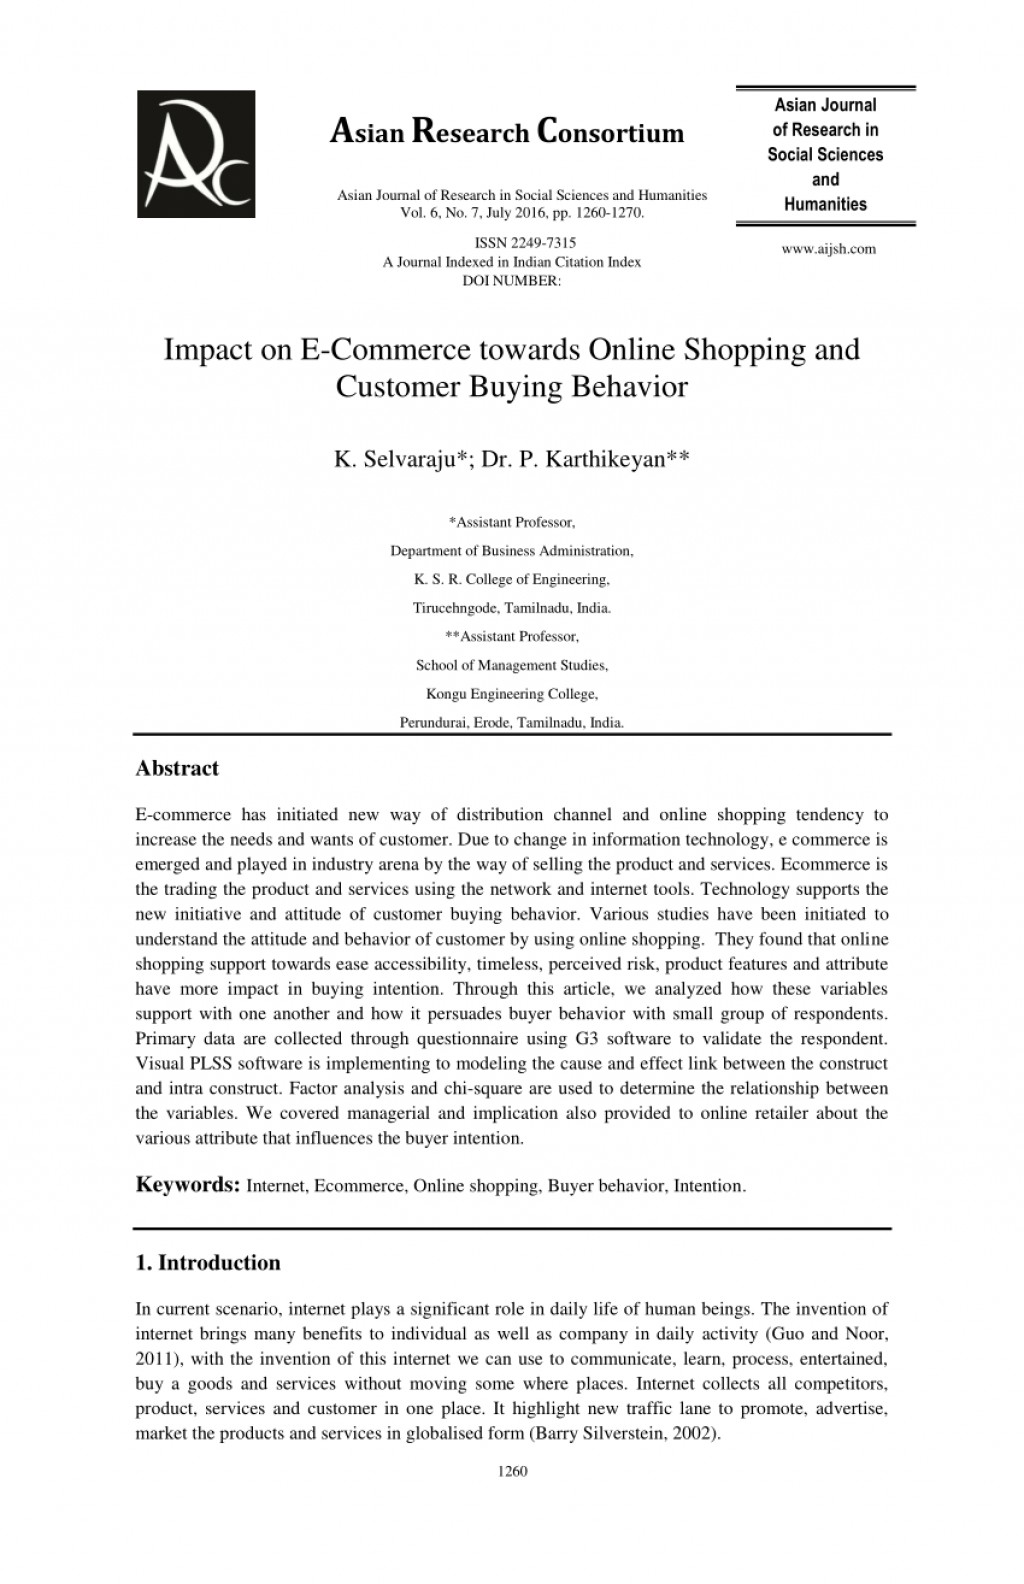 006 Largepreview Research Paper Online Shopping In India Striking Papers On Grocery Large